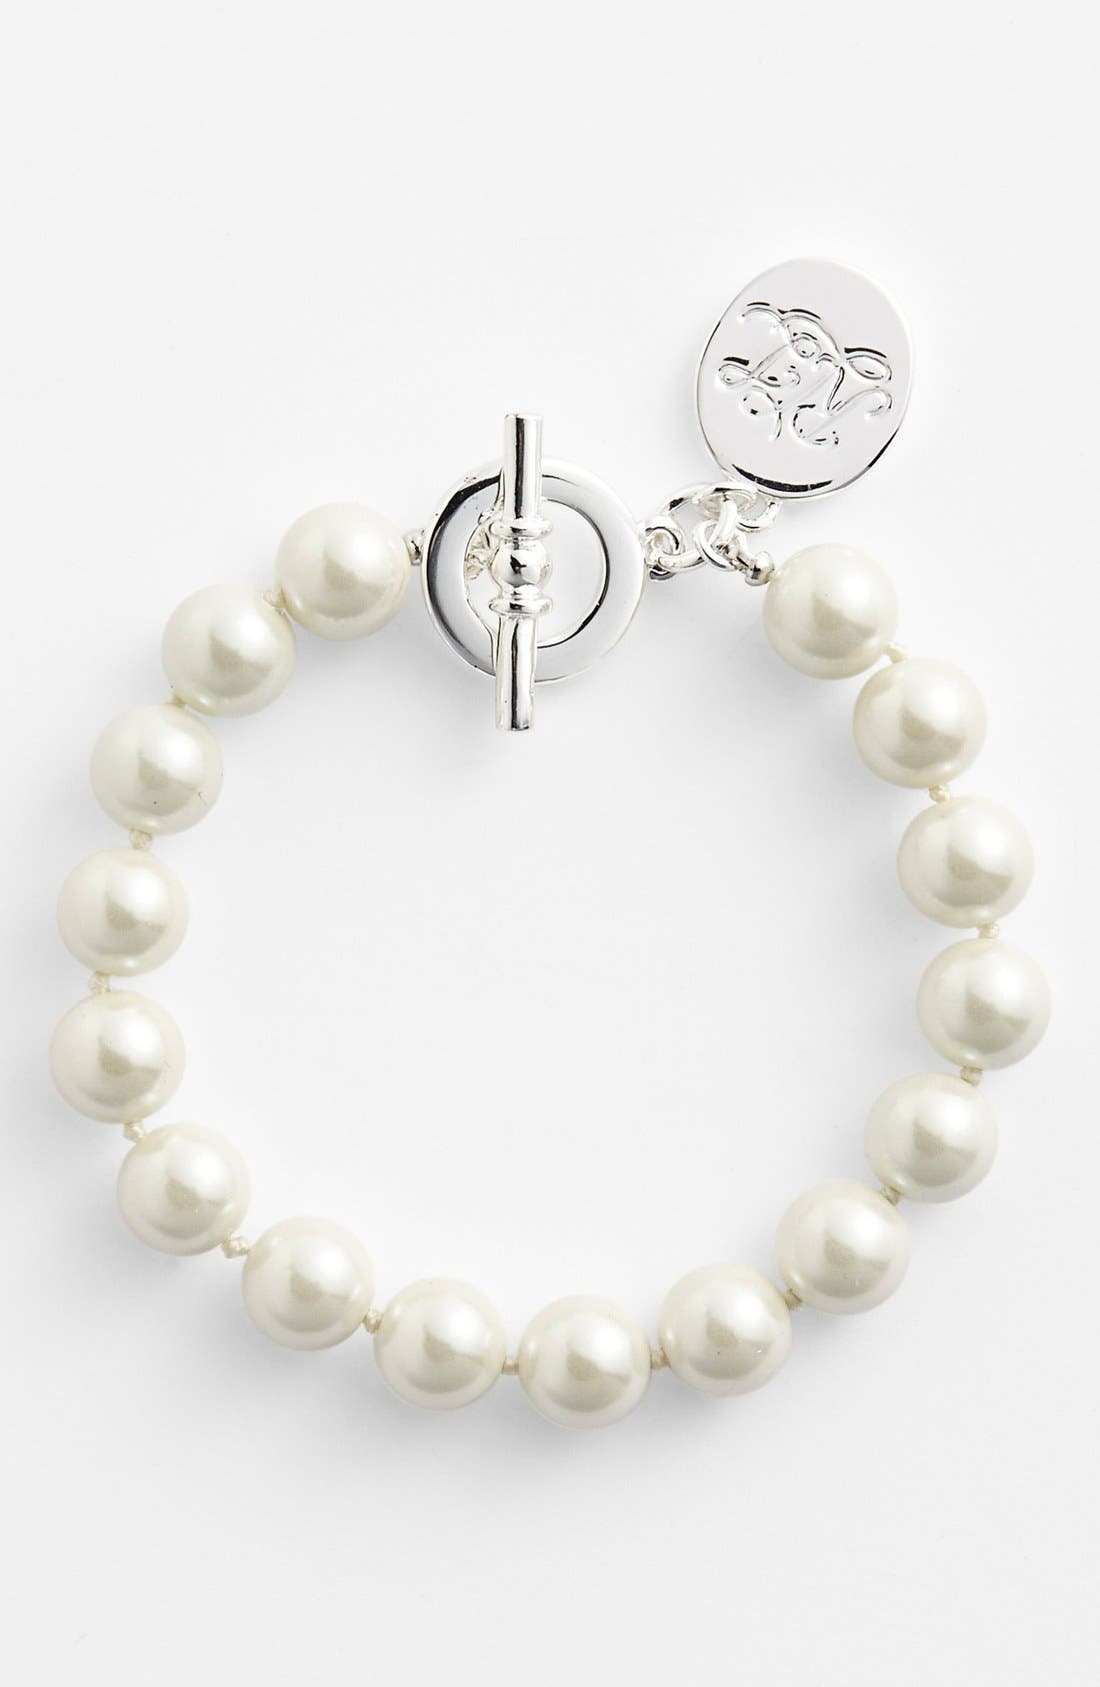 Main Image - Lauren Ralph Lauren 10mm Glass Pearl Toggle Bracelet